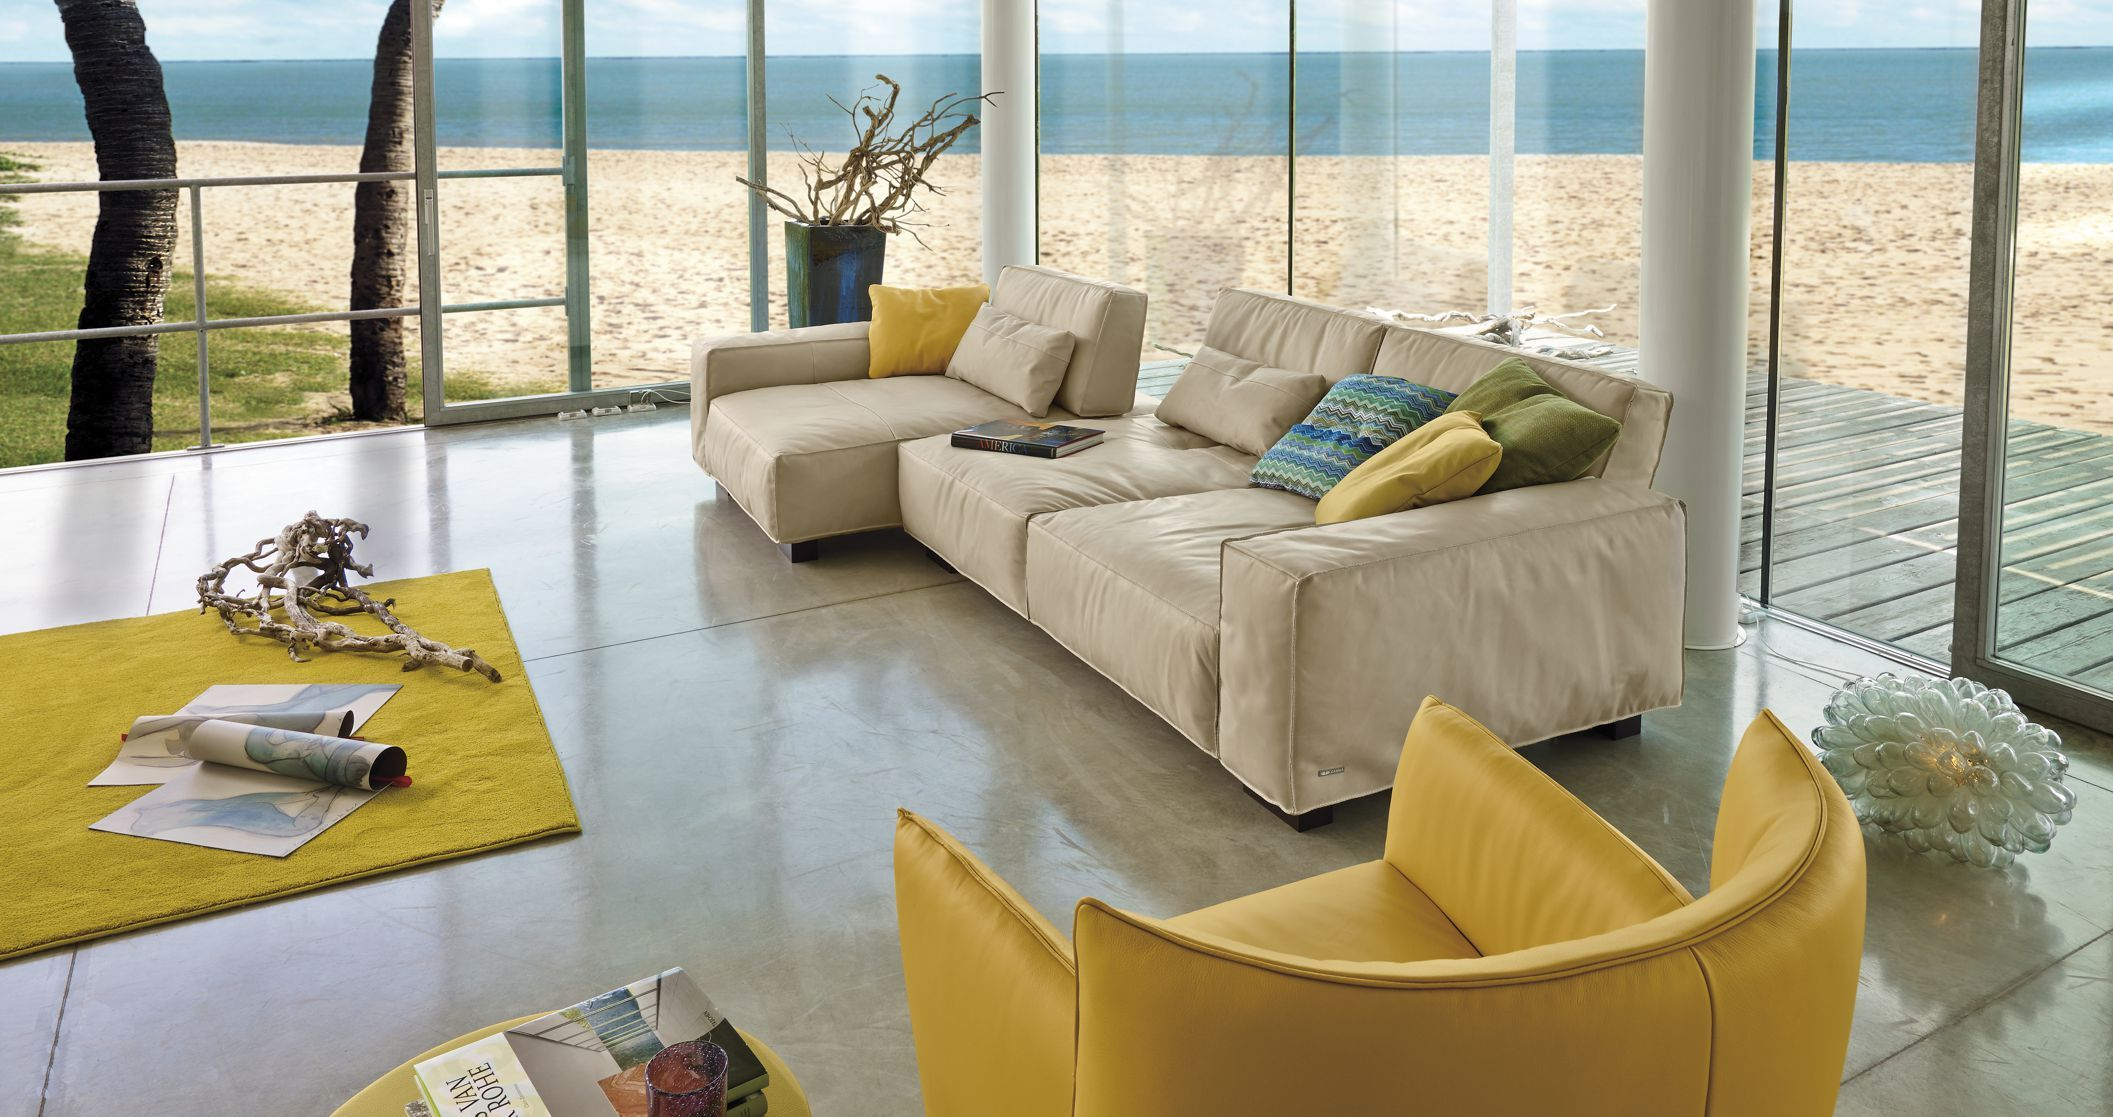 Möbel Jablonski Soho Contemporary Sofa Sectional By Gamma Arredamenti Italy